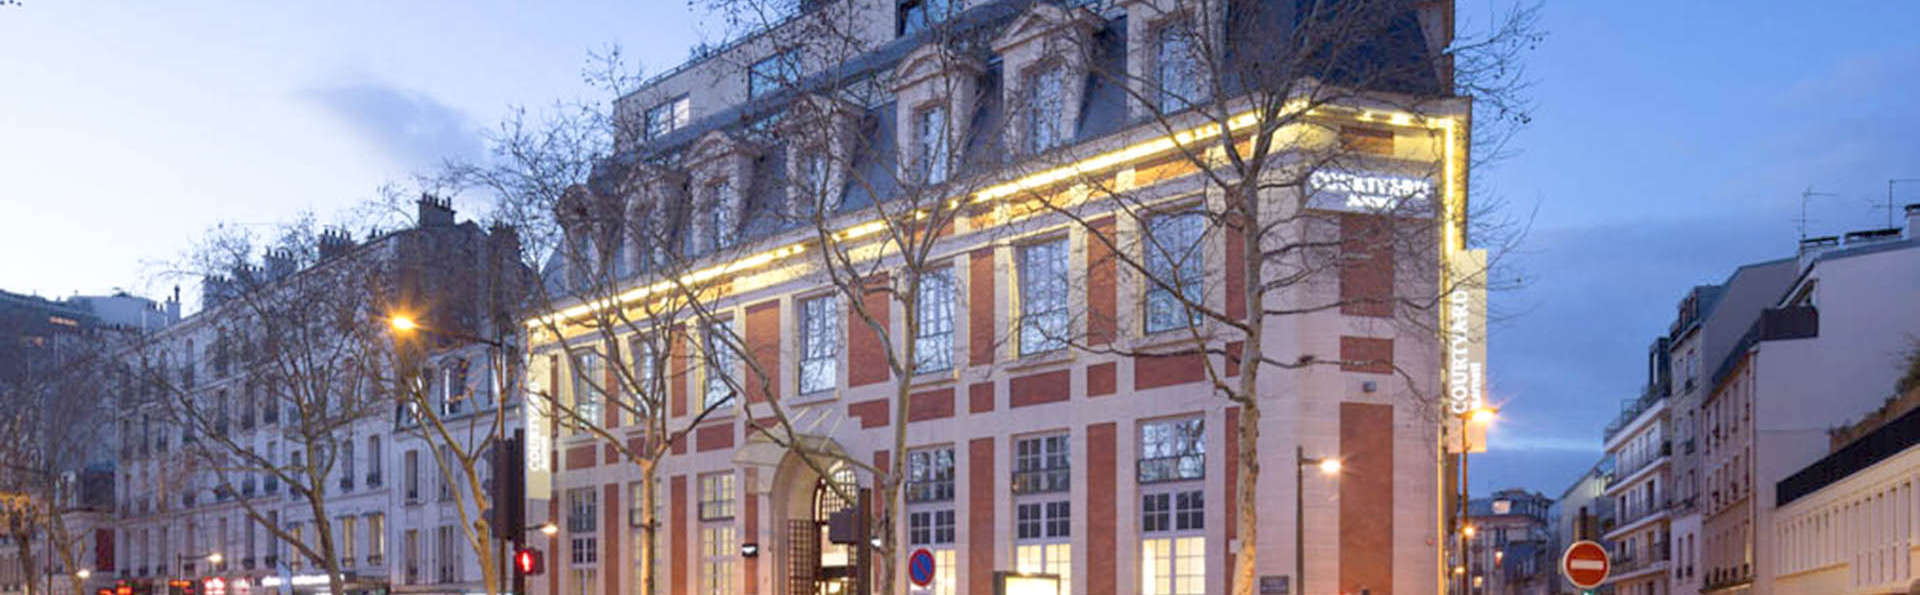 Courtyard by Marriott Paris Boulogne - EDIT_FRONT_02.jpg